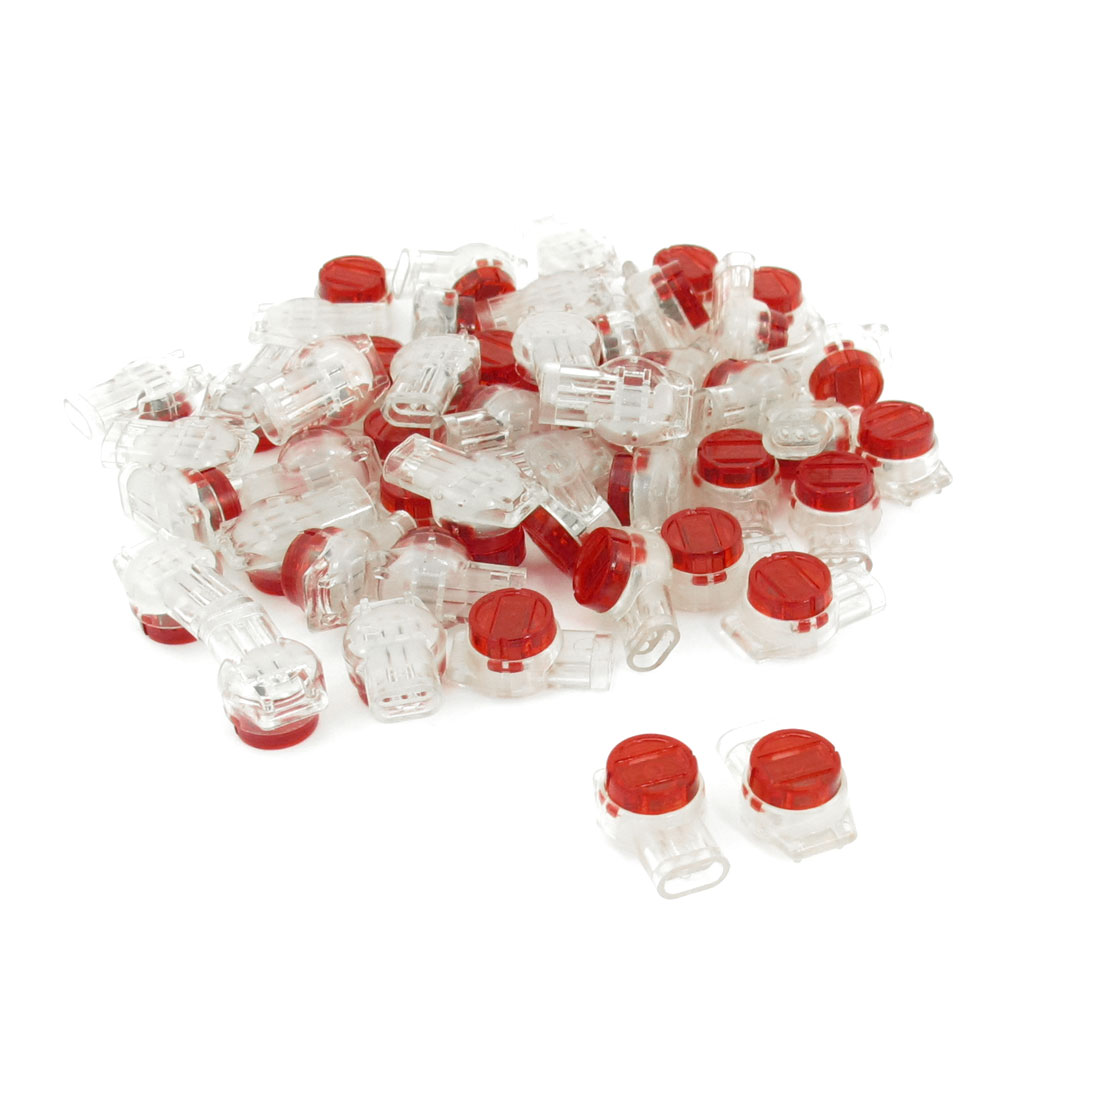 Red-Clear-Gel-Splice-Joints-UY-Connector-Three-Port-Wire-Connectors-50-Pcs